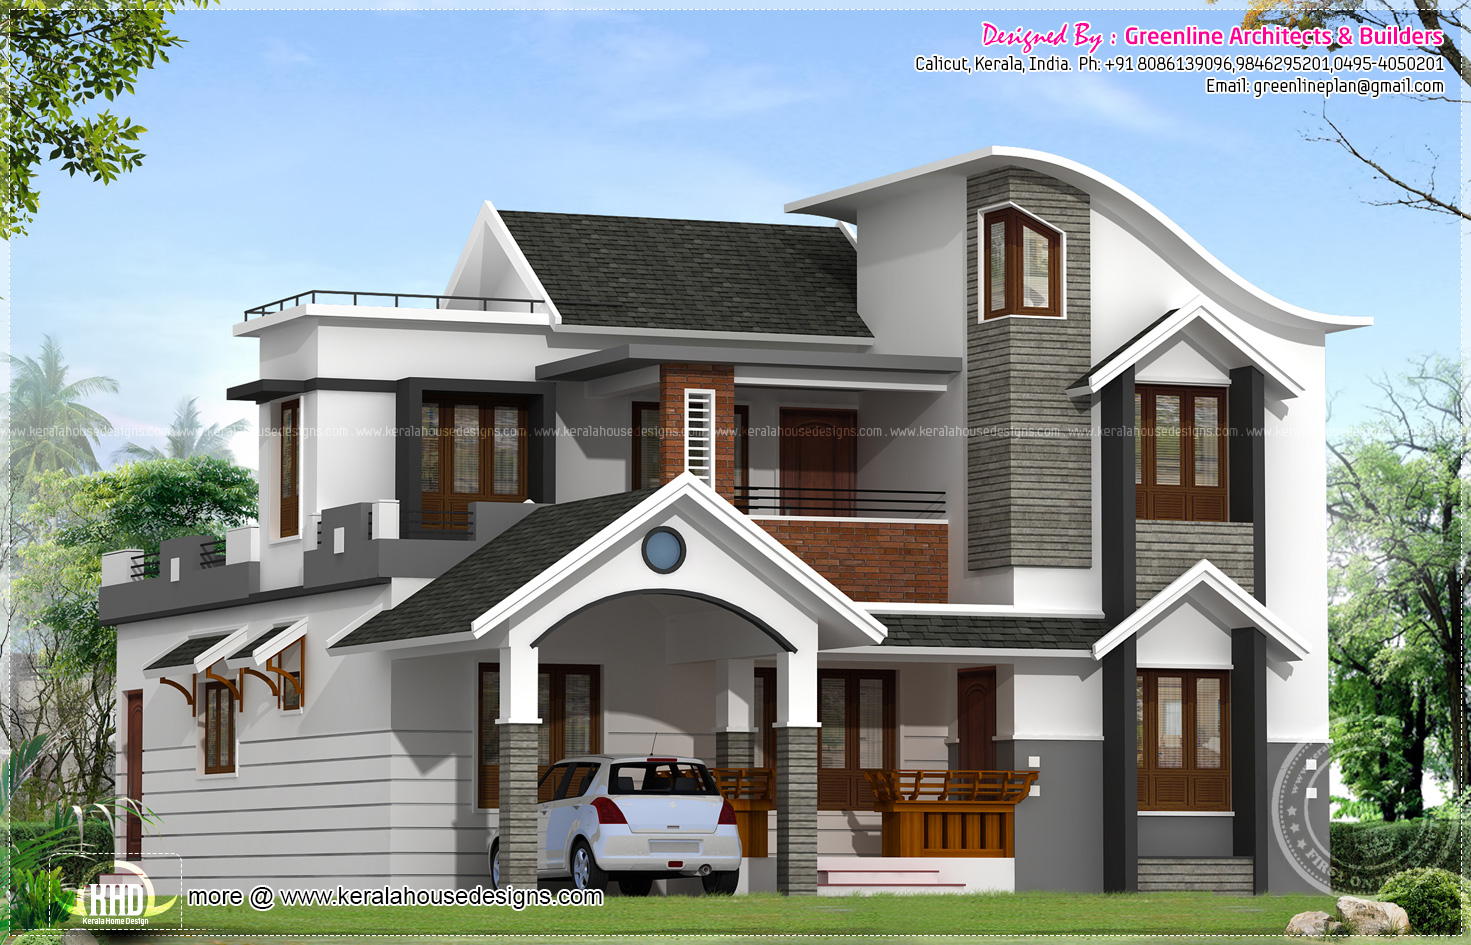 Modern house architecture in kerala kerala home design for Contemporary style homes in kerala